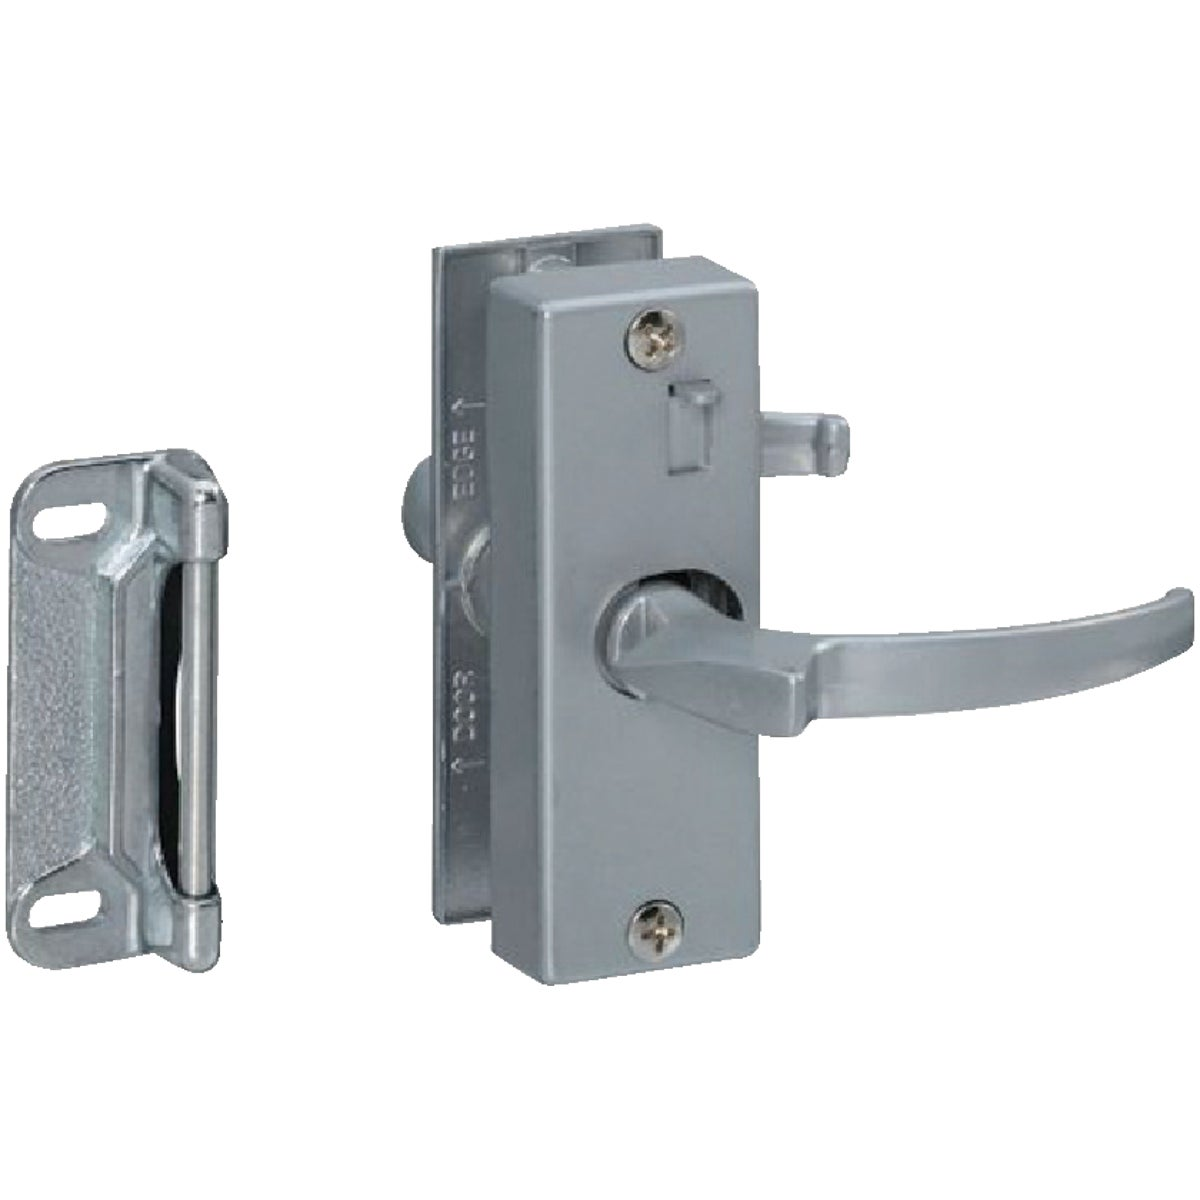 ALUM PUSH/PULL LATCH